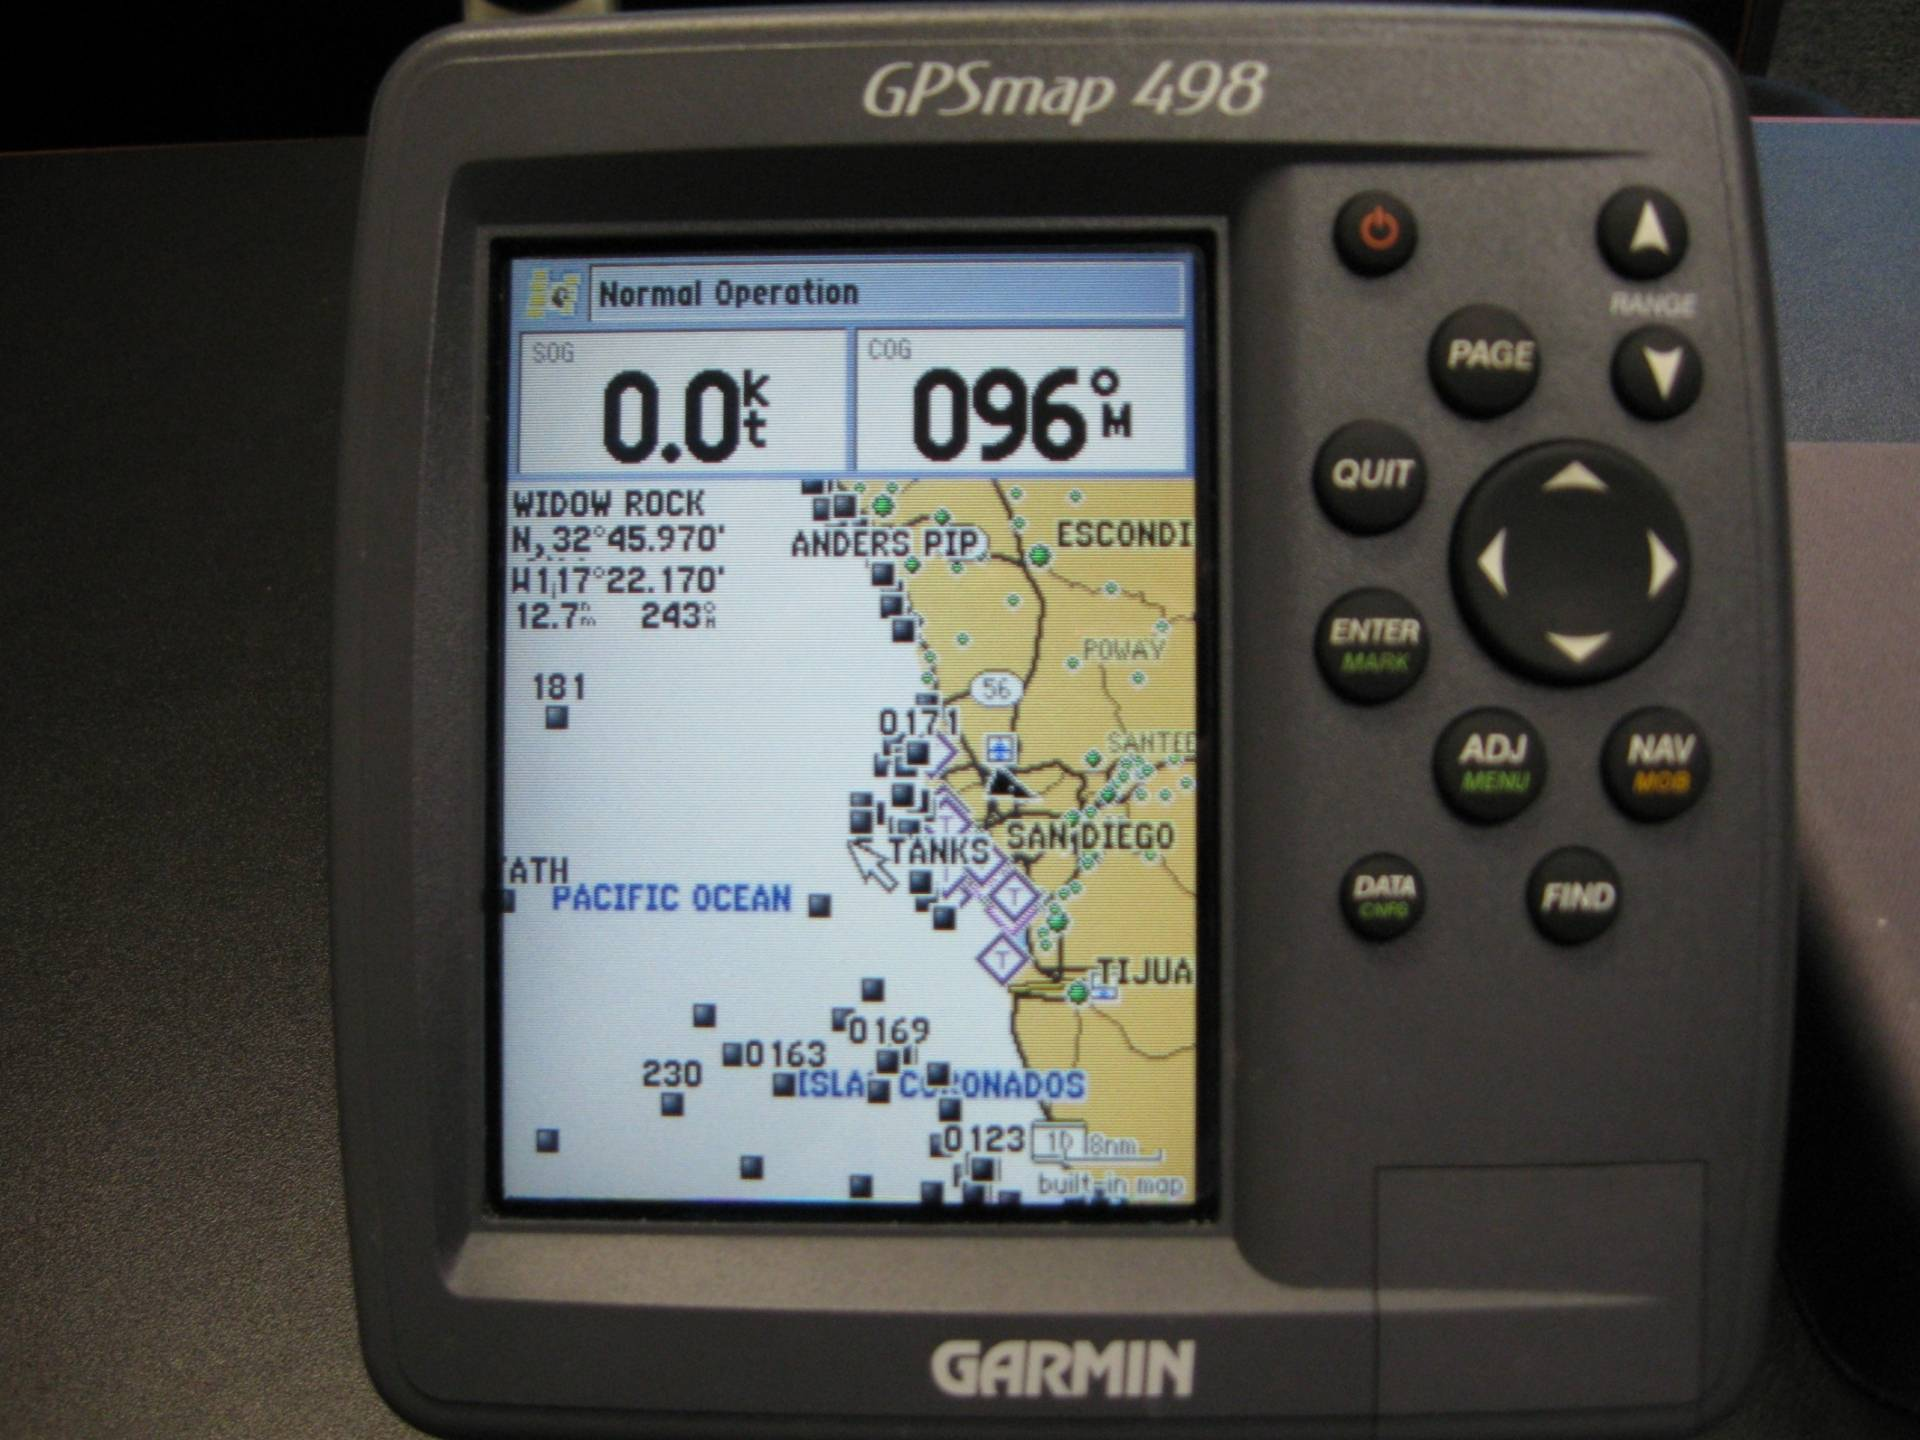 934455_802ce9e6110a02de3869edae333ca275 garmin 498 wiring diagram on garmin download wirning diagrams garmin 498 wiring diagram at pacquiaovsvargaslive.co